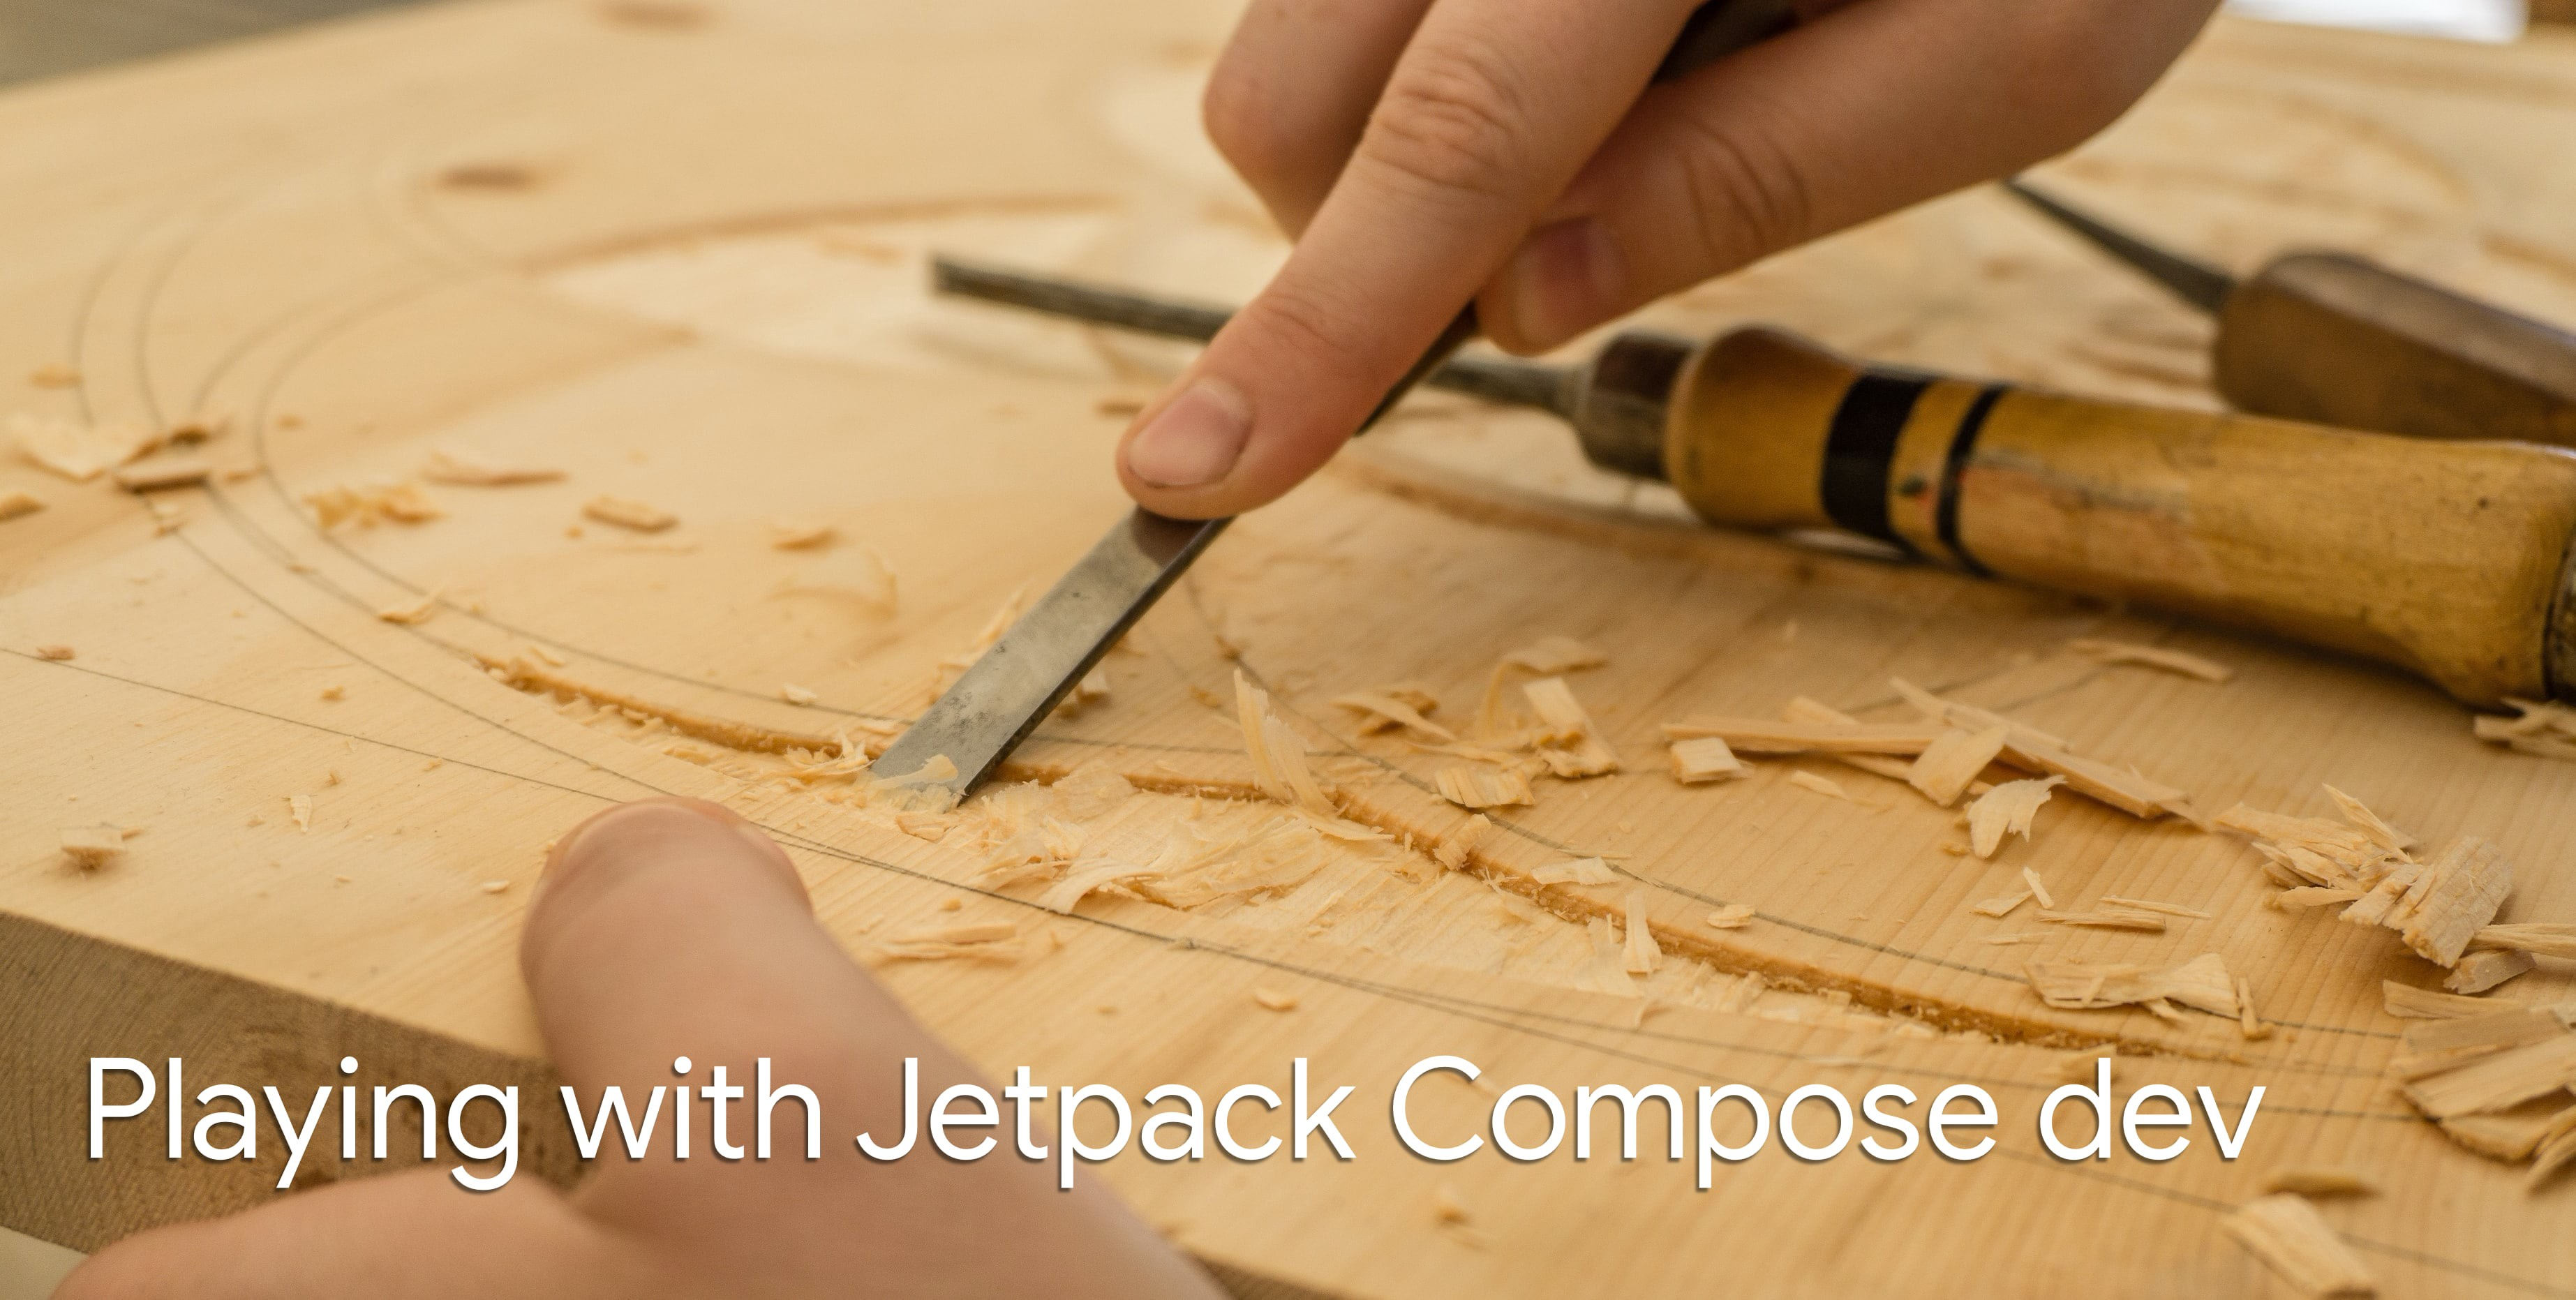 Playing with Jetpack Compose dev